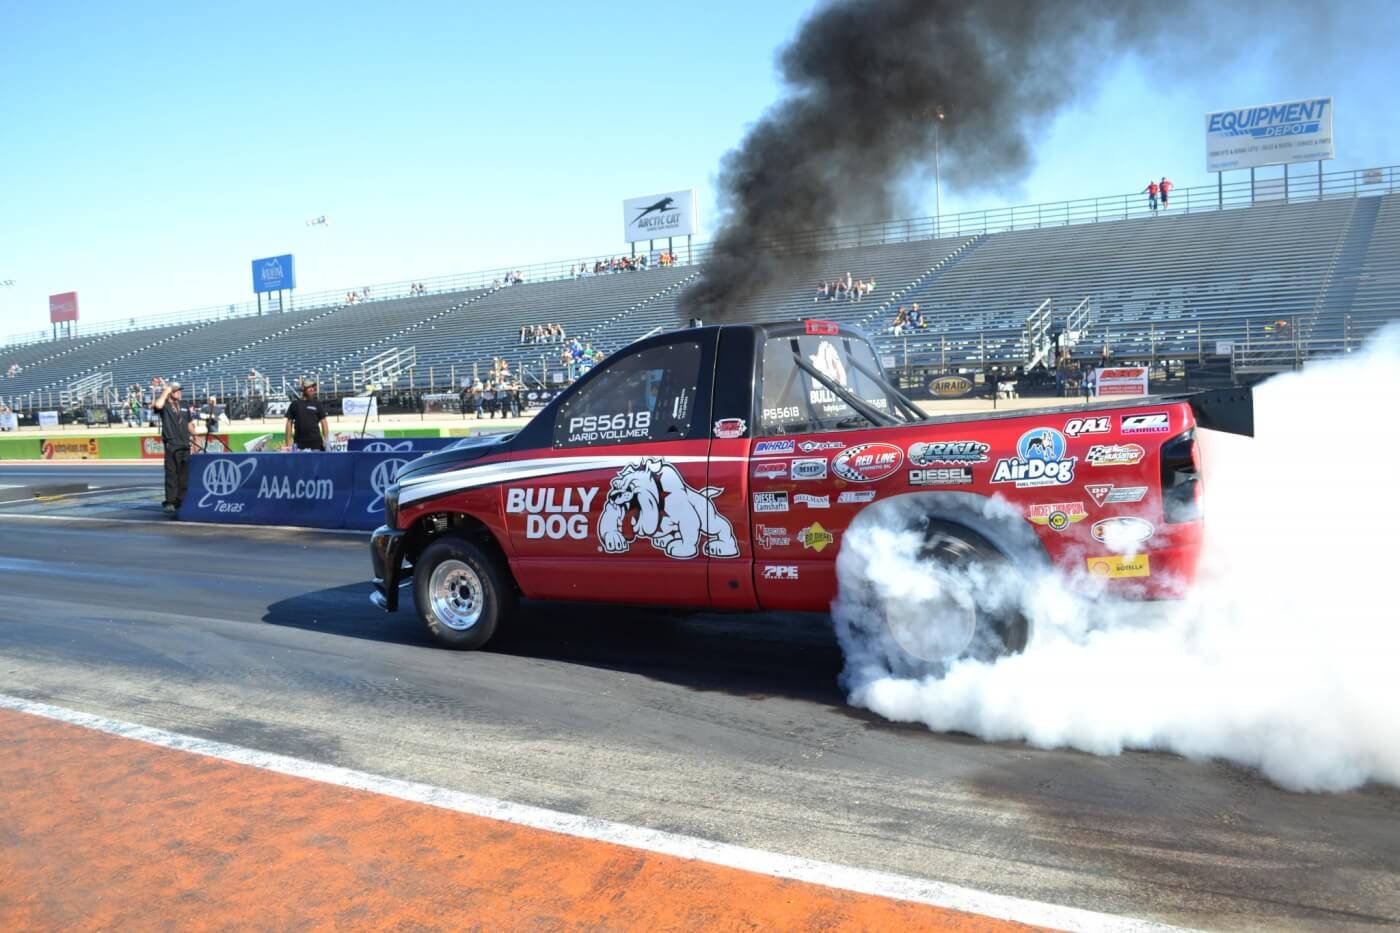 Bully Dog brought their famous record-holding Pro Street truck to the party and laid down a number of high eight-second passes. Their consistent performance made it look like they would be a shoe-in for the Pro Street finals.